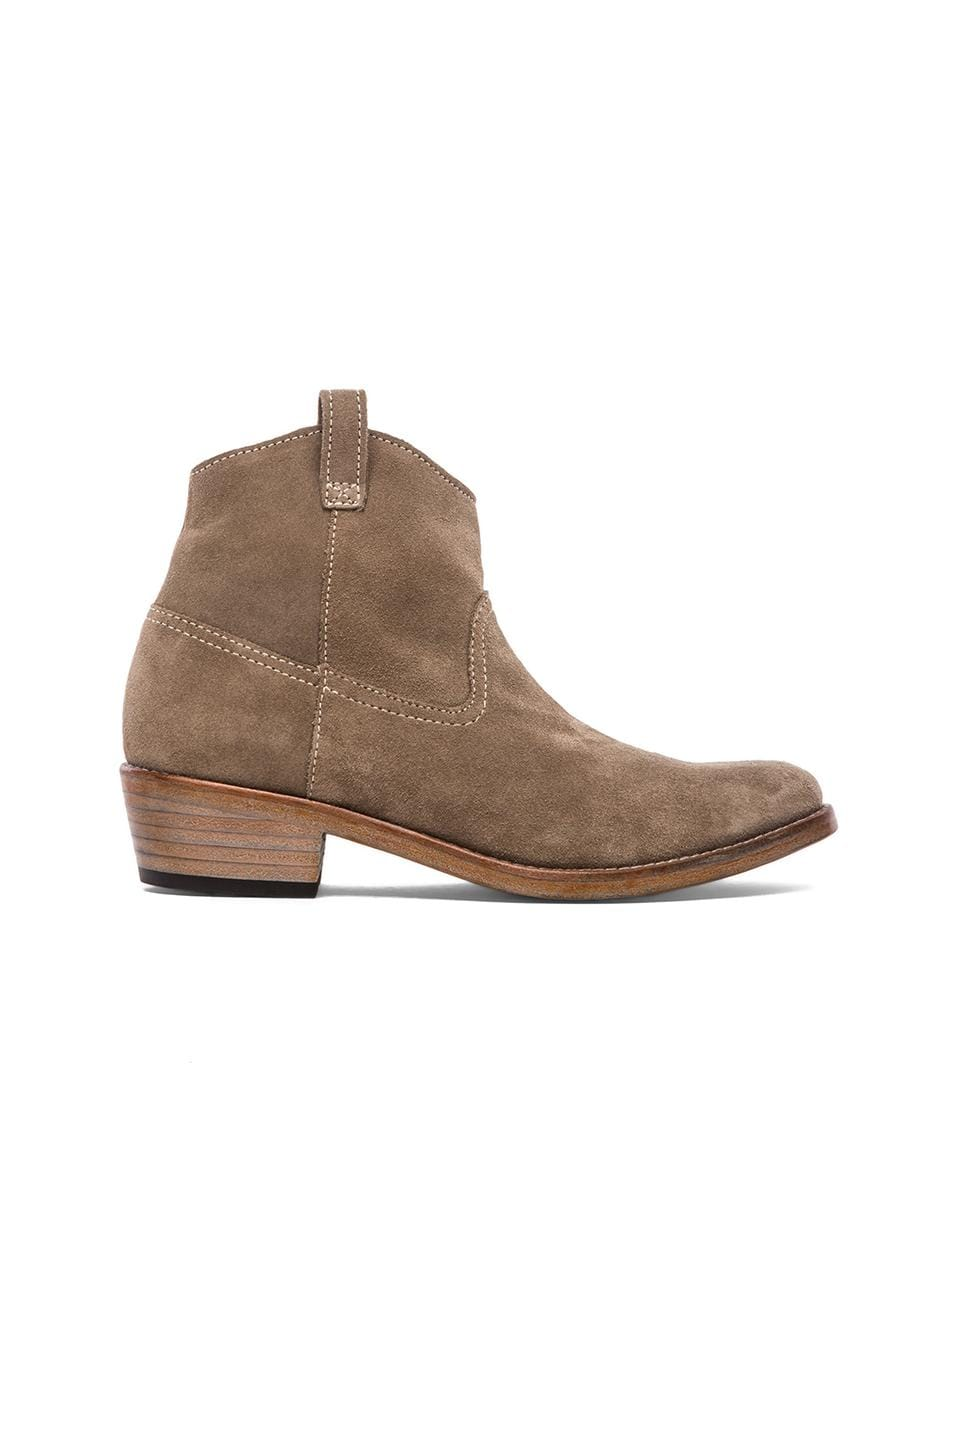 ANINE BING Suede Boot in Sand